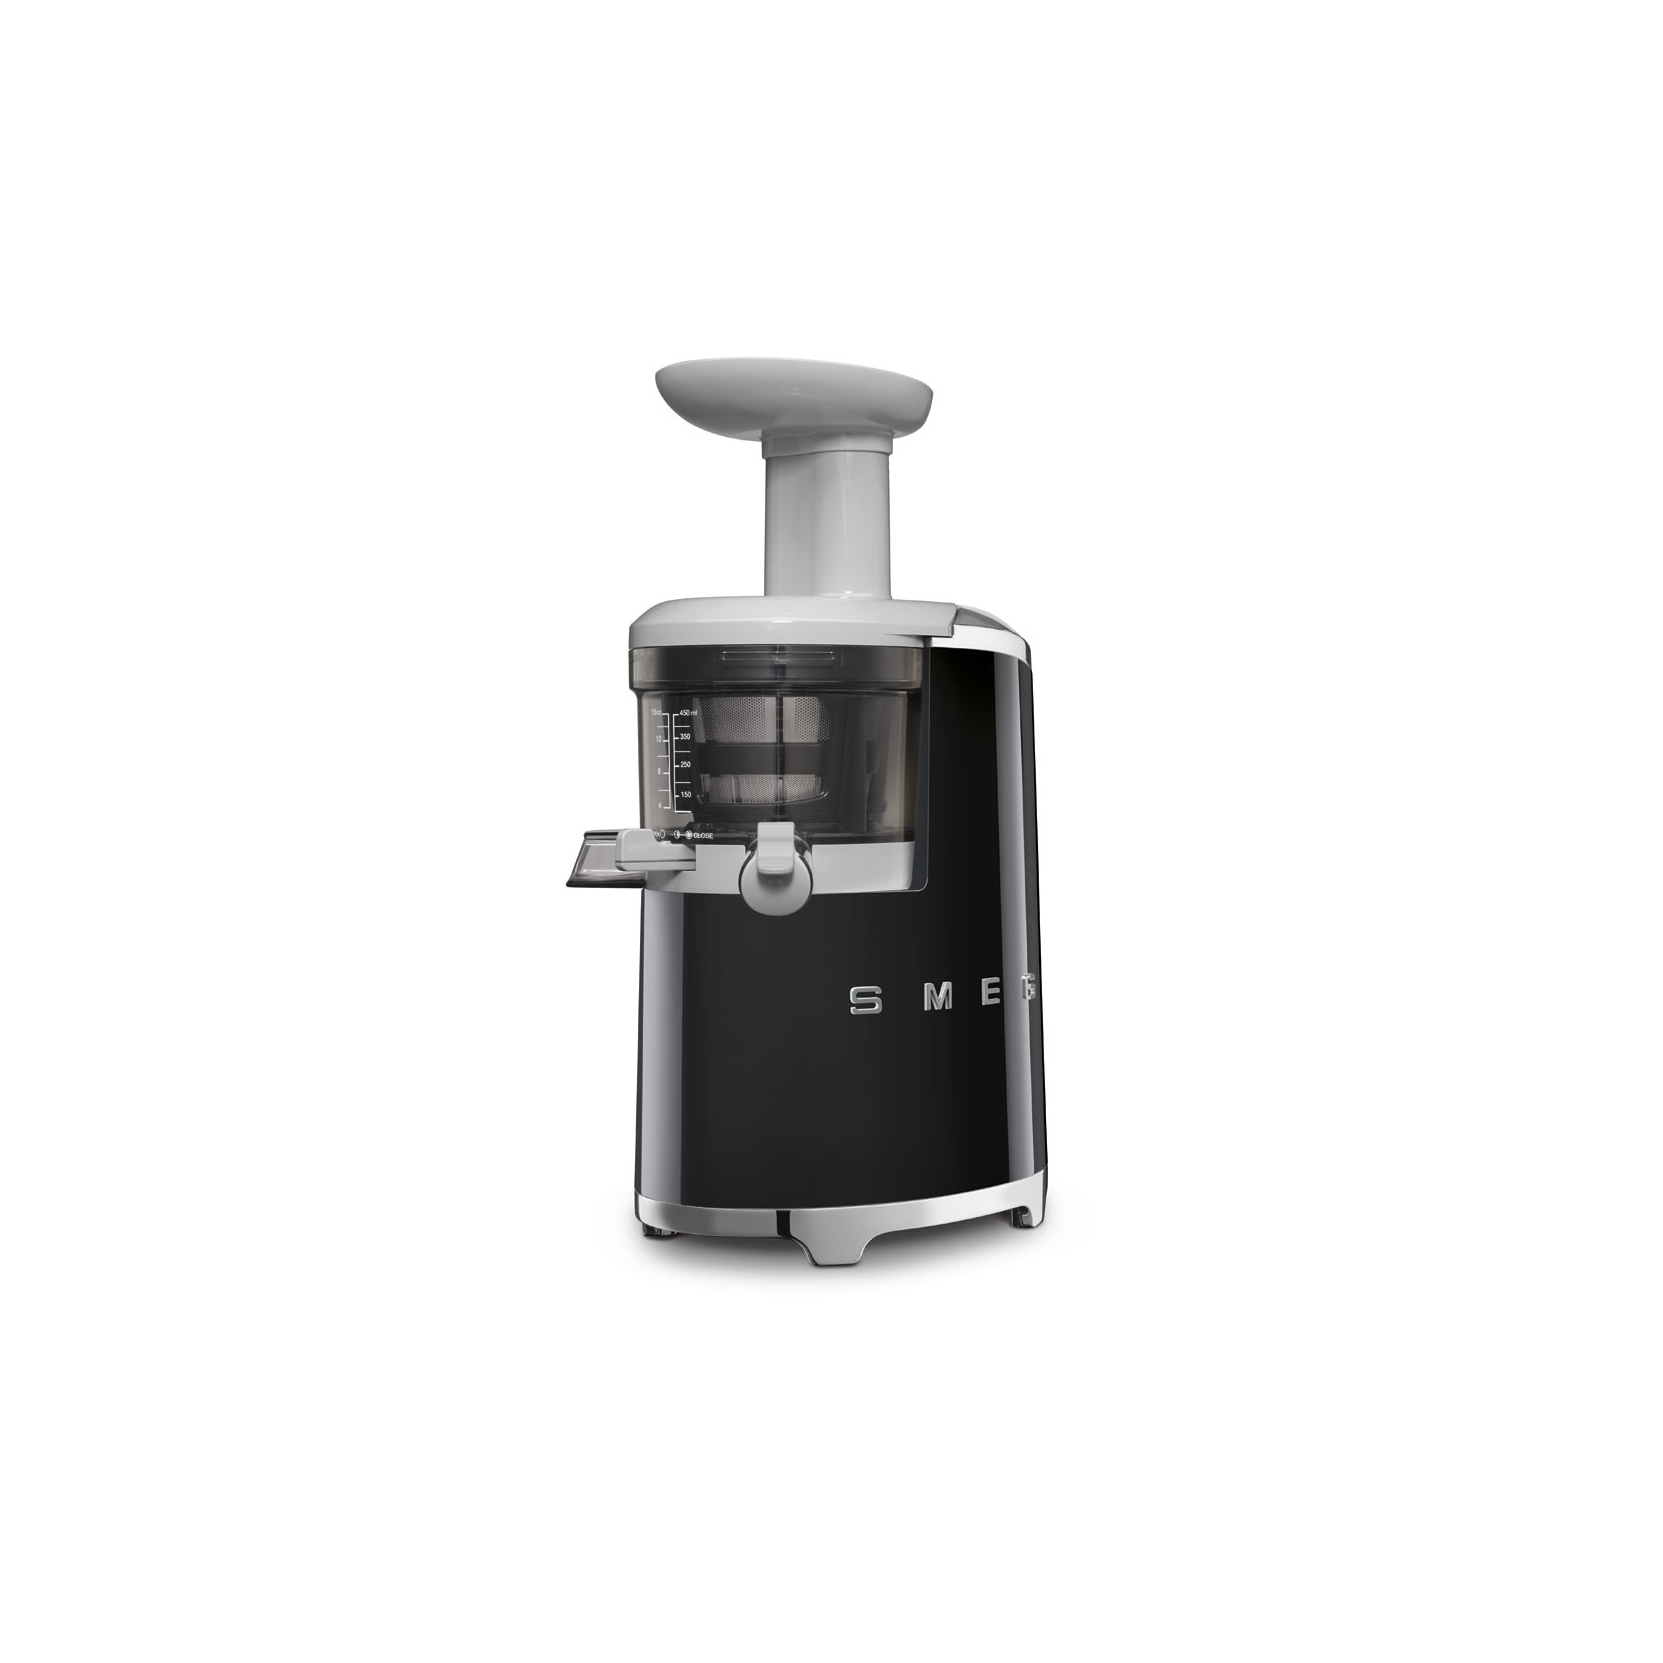 SMEG SLOW JUICER RETRO STYLE AESTHETIC - TattaHome